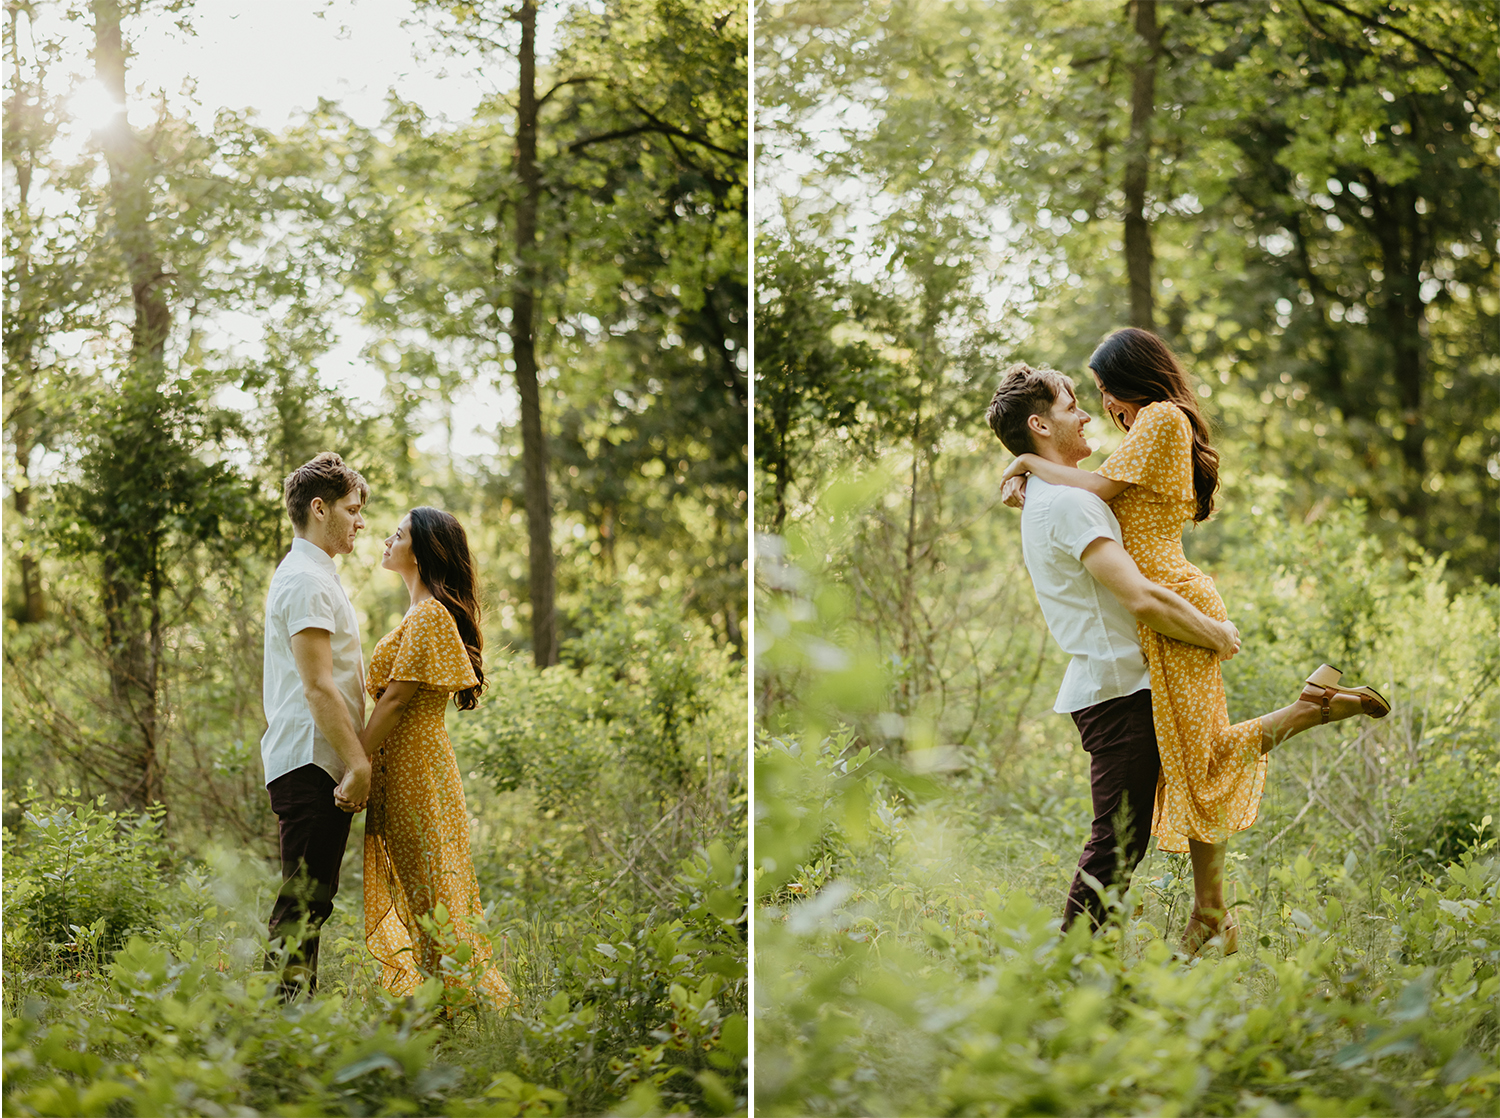 Man and woman cuddling in forest clearing for engagement photos at sunset